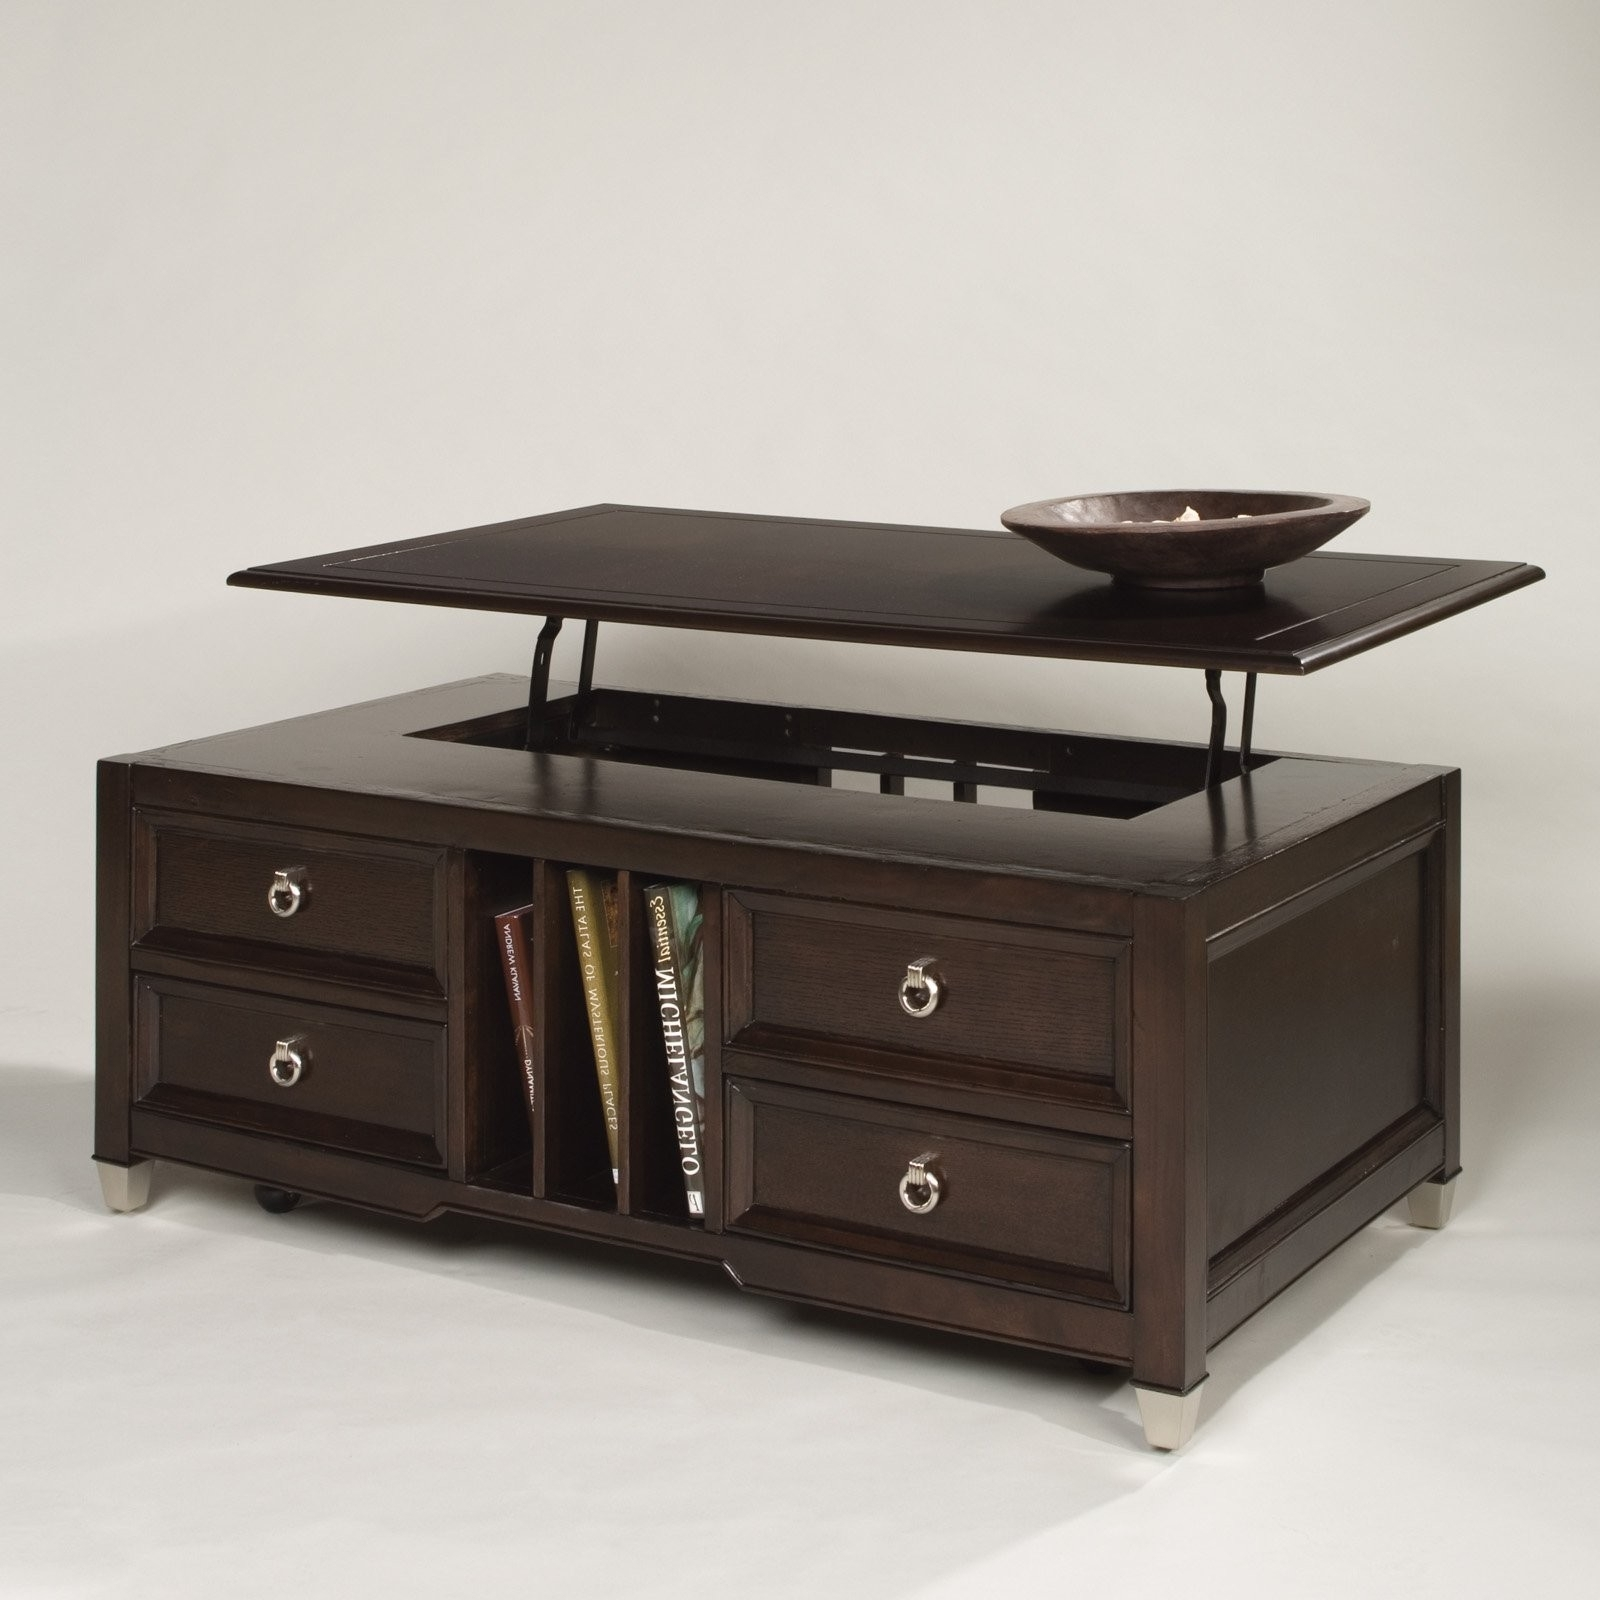 Trendy Kelvin Lift Top Cocktail Tables Inside 18 Beautiful Flip Up Coffee Table (View 9 of 20)